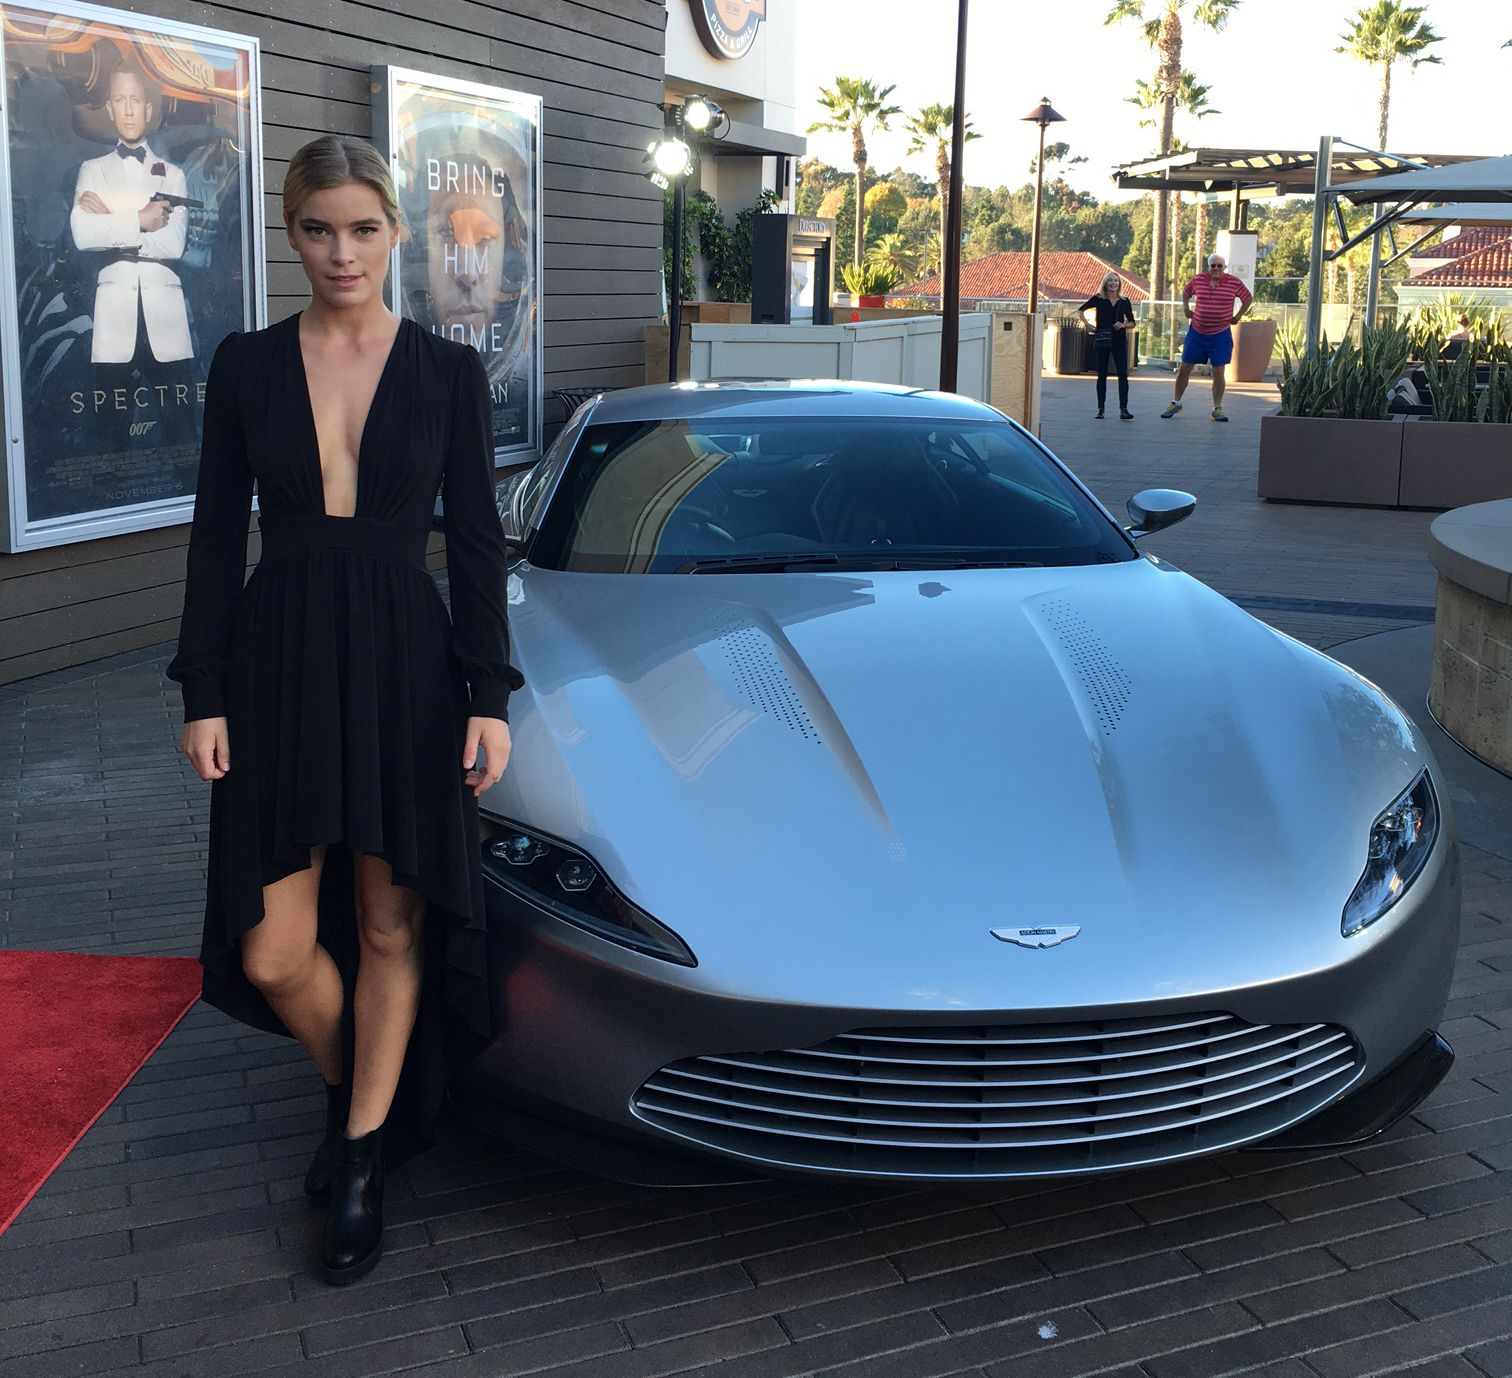 gemita samarra, spectre, james bond, aston martin db10